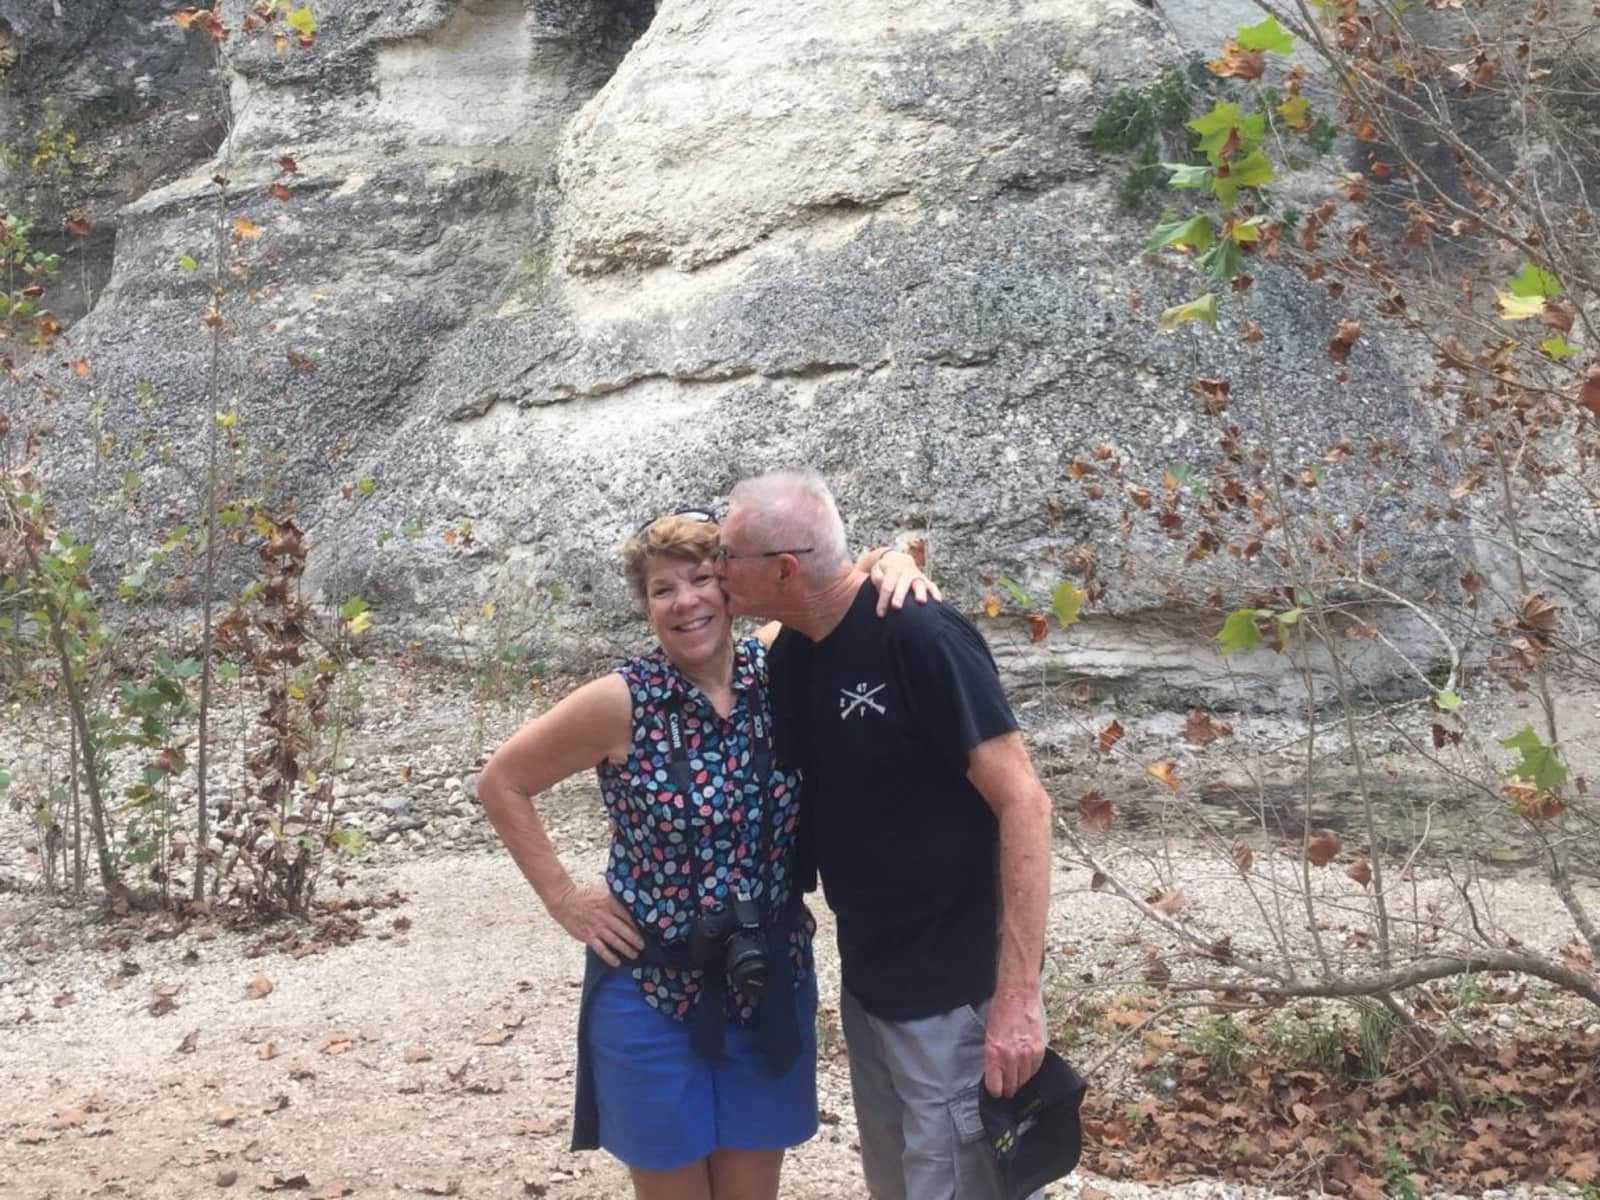 Cathy & Cliff from San Antonio, Texas, United States